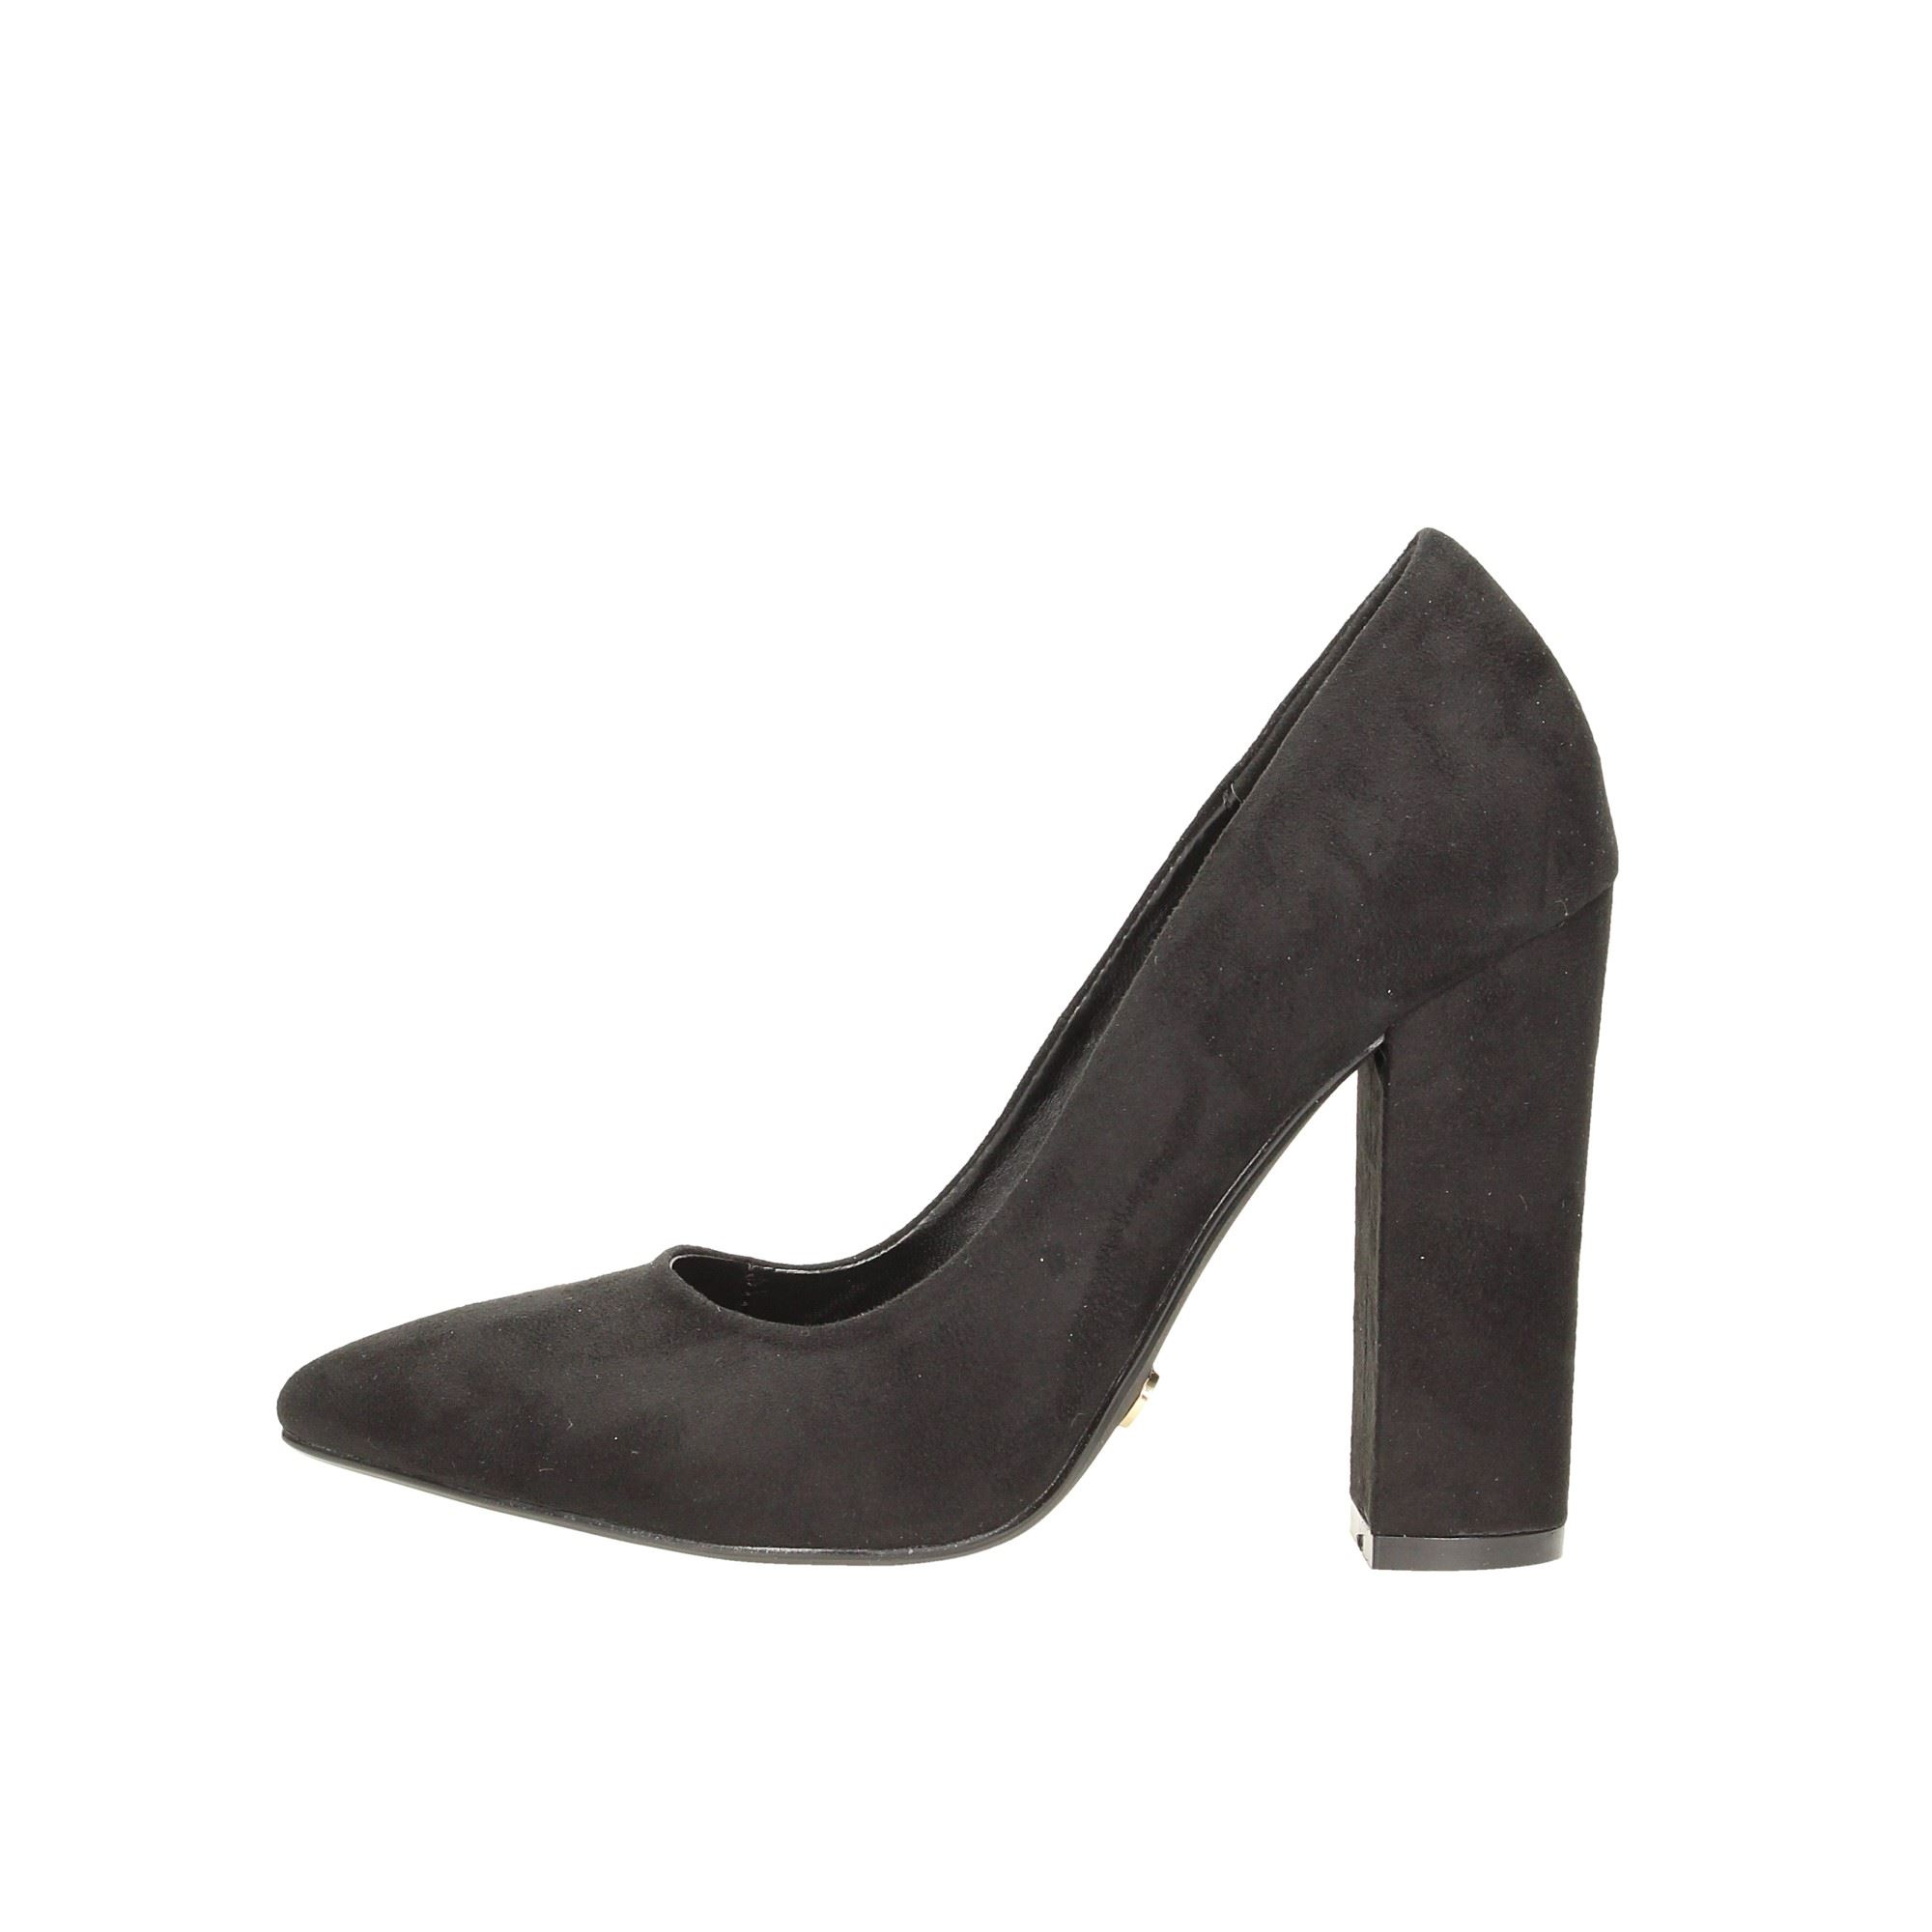 Tata Italia Shoes Woman Décolleté Black-2 9354A-1